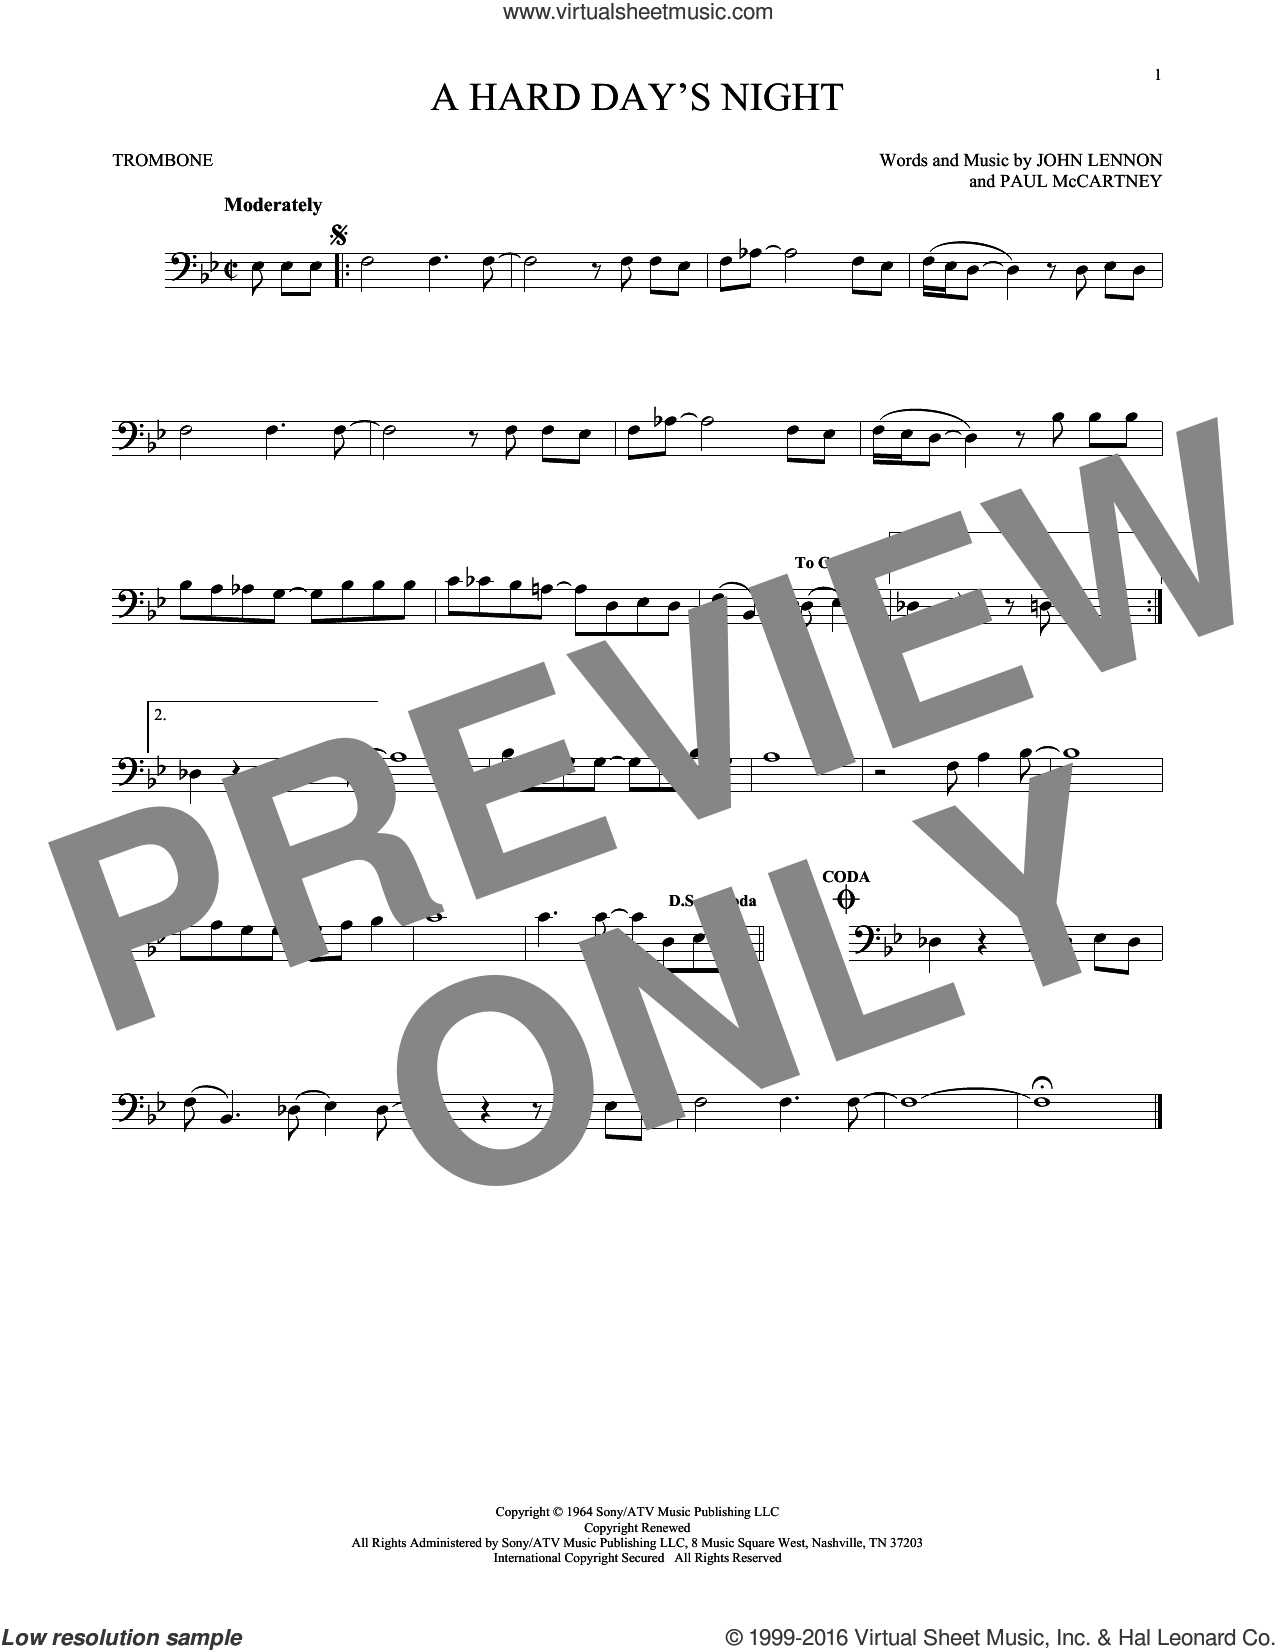 A Hard Day's Night sheet music for trombone solo by The Beatles, John Lennon and Paul McCartney, intermediate skill level